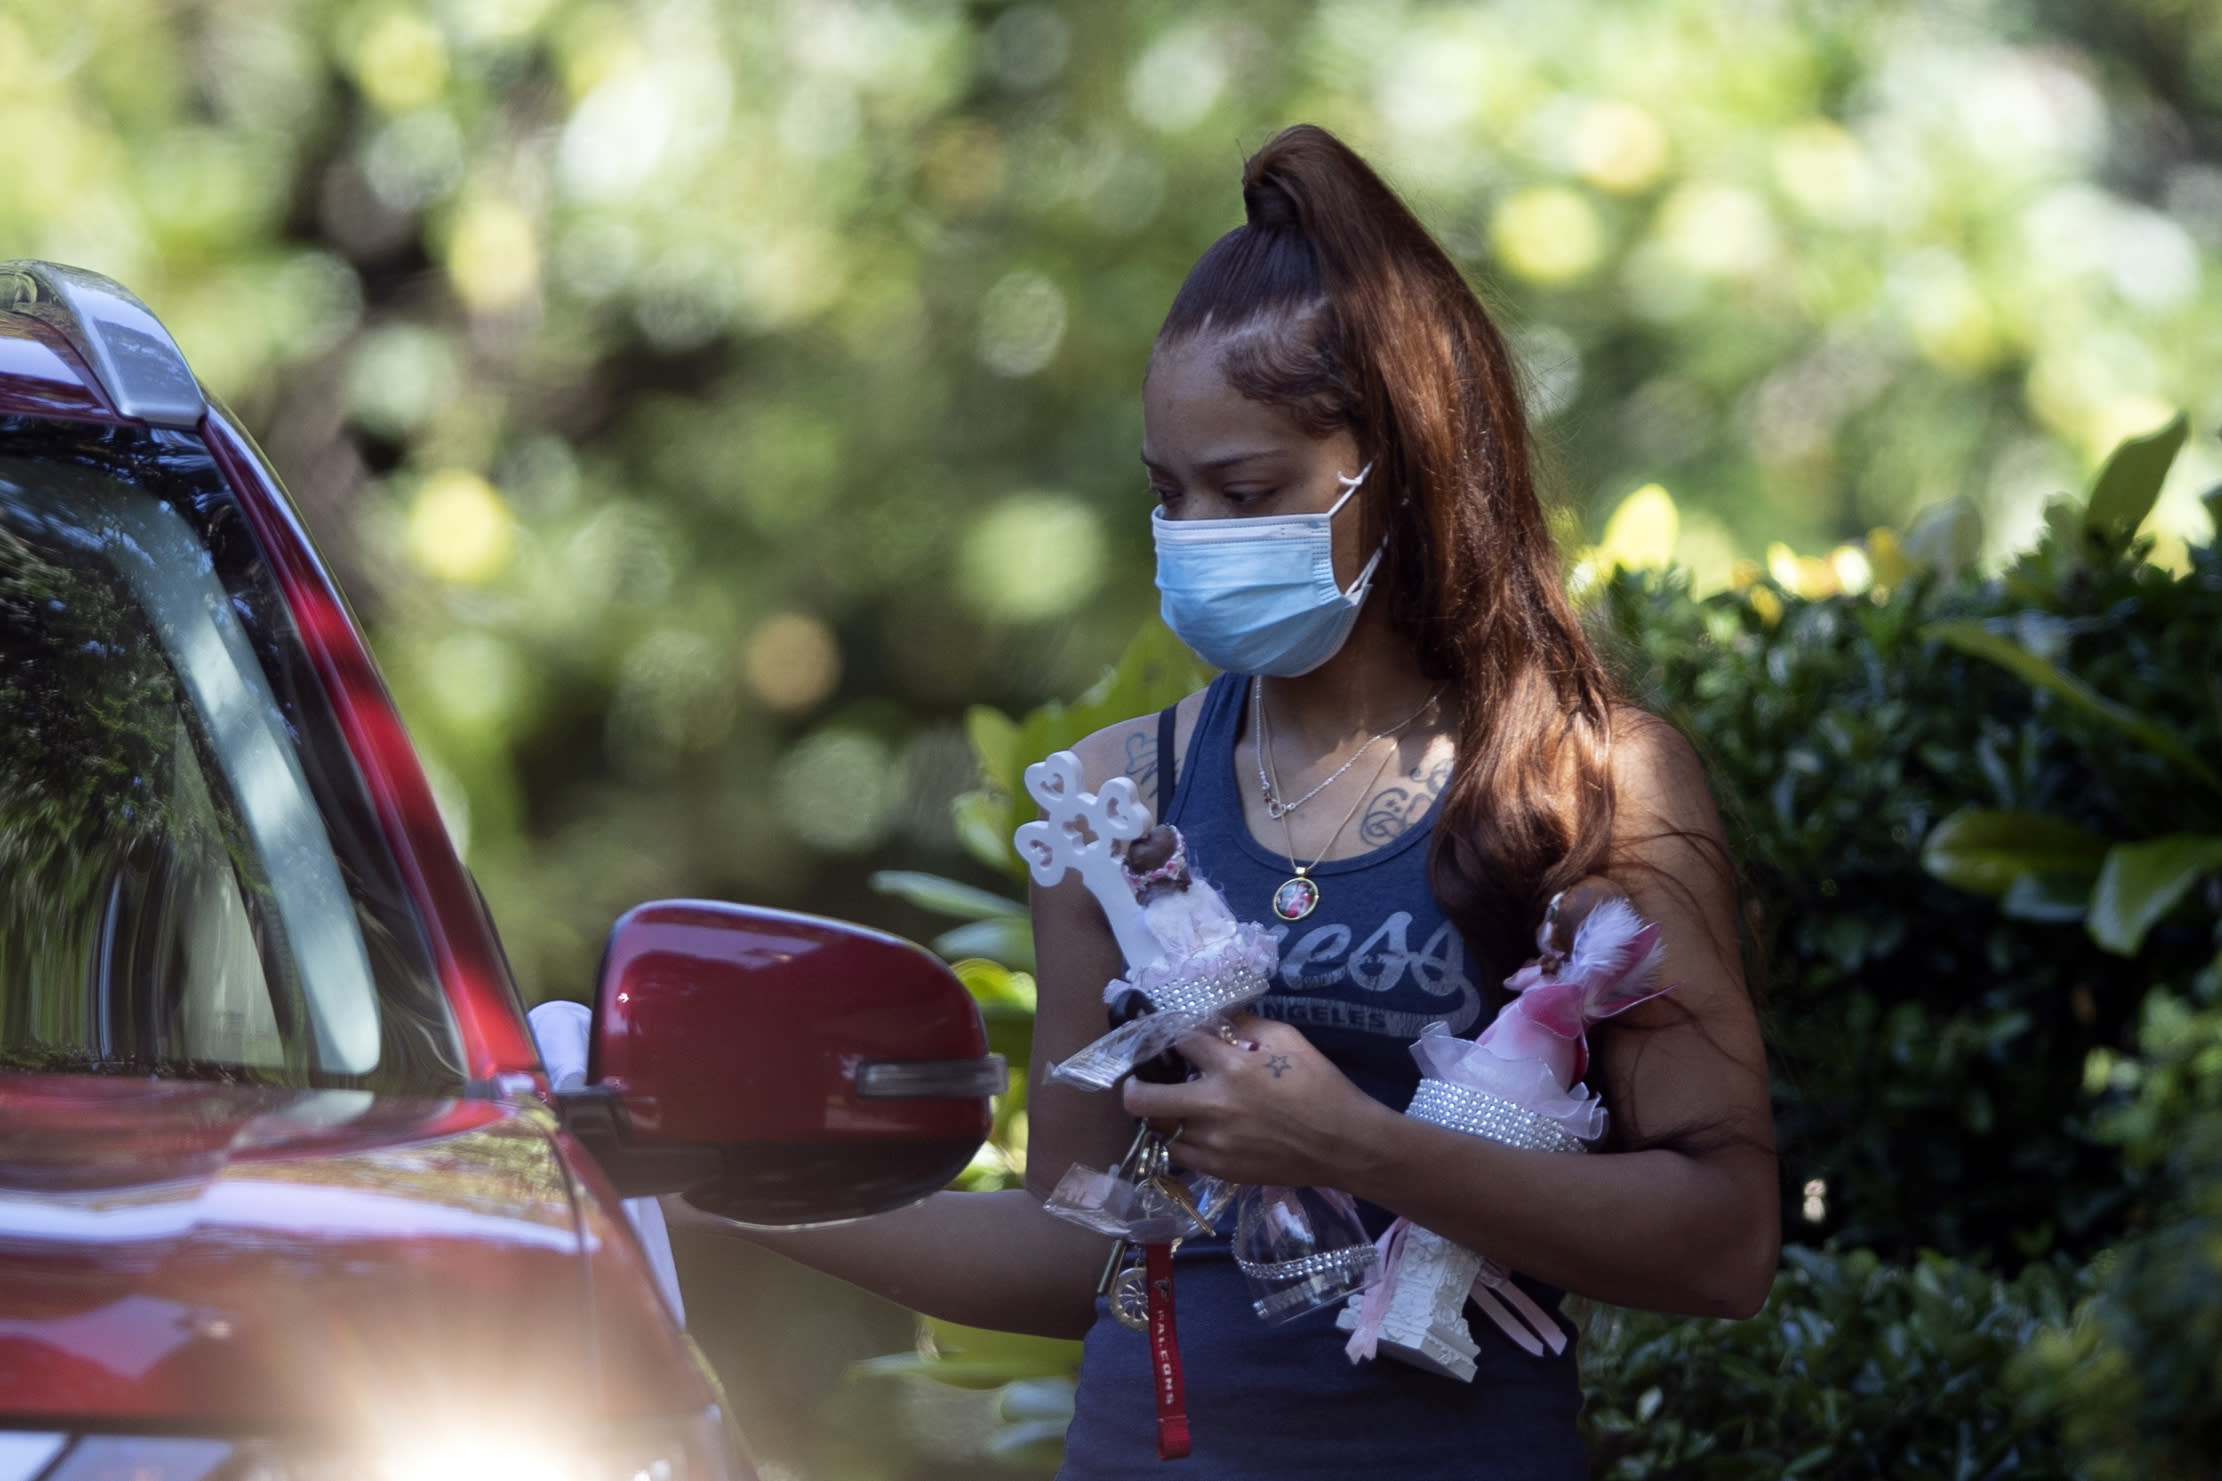 Charmaine Turner prepares to enter a viewing her for 8-year-old daughter Secoriea Turner, who was fatally shot in Atlanta on July 4th near the Wendy's site where Rayshard Brooks was killed the previous month Tuesday, July 14, 2020, in South Fulton, Ga. (AP Photo/John Bazemore)